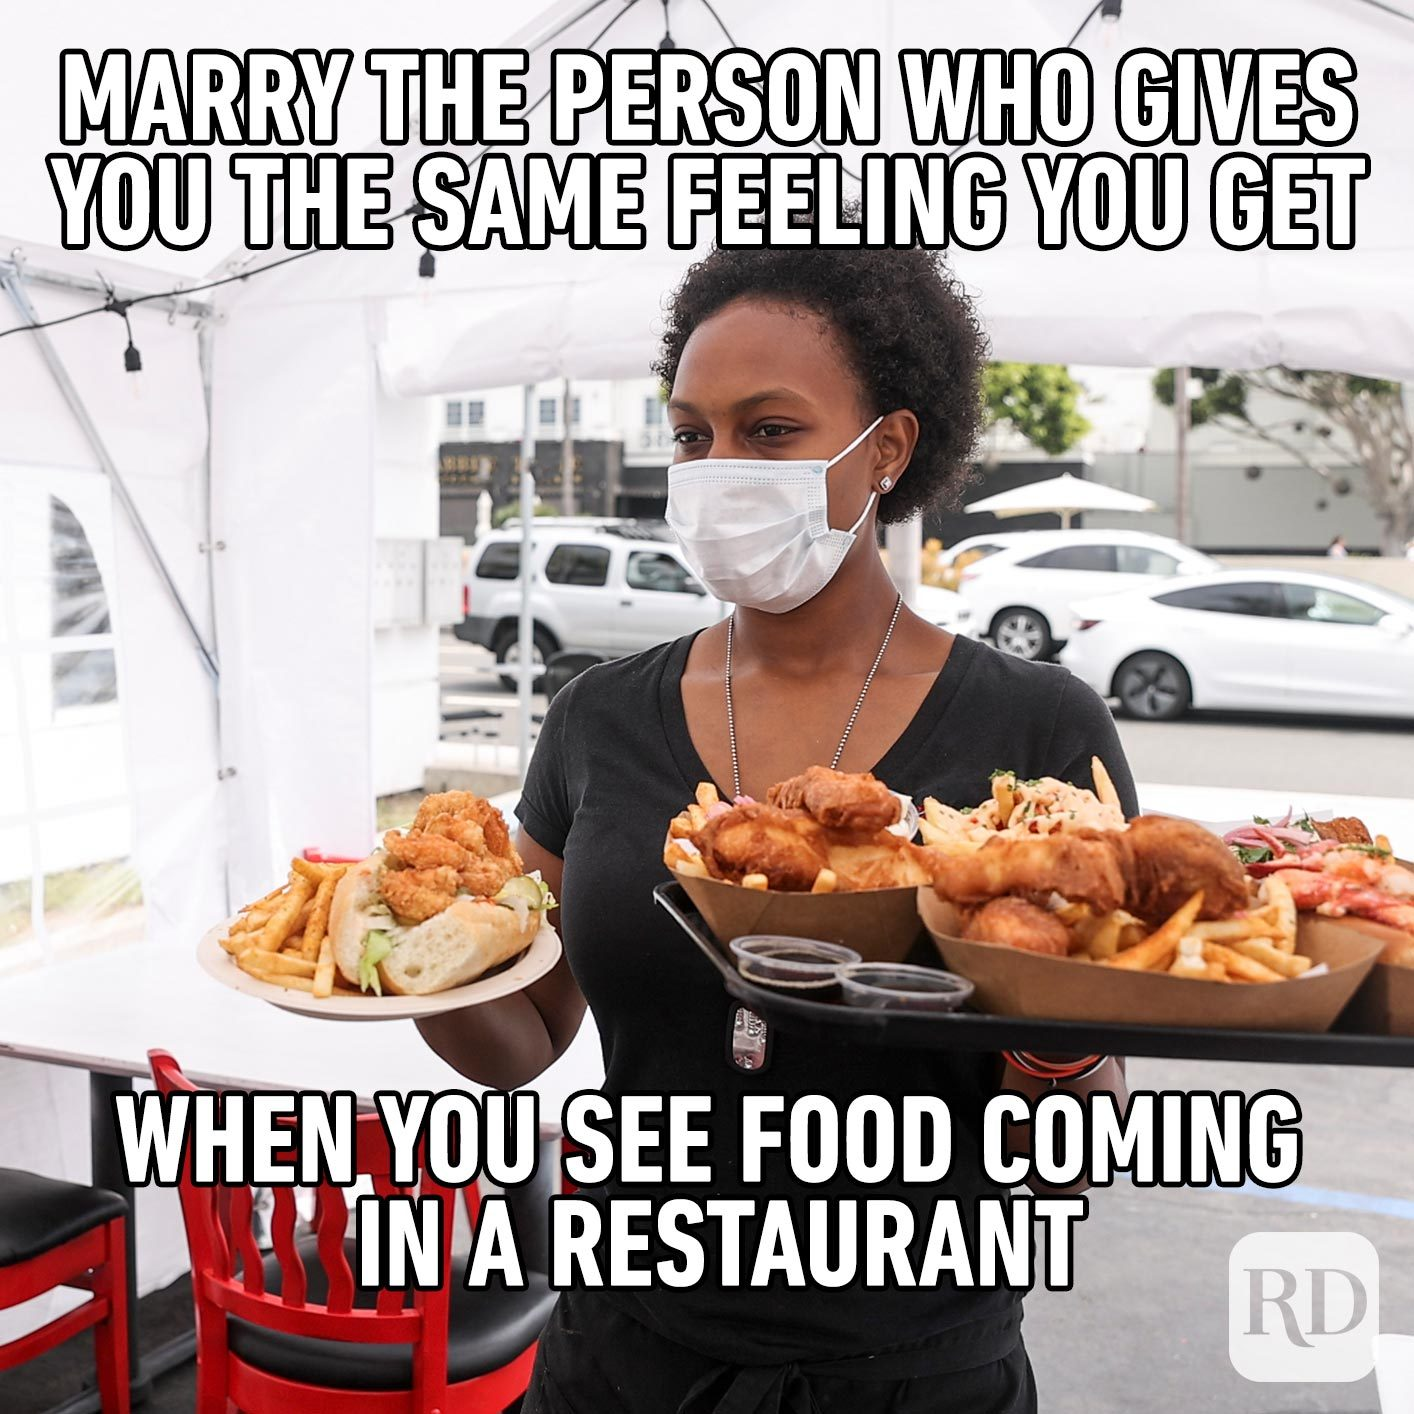 Restaurant worker arriving with food. Meme text: Marry the person who gives you the same feeling you get when you see food coming in a restaurant